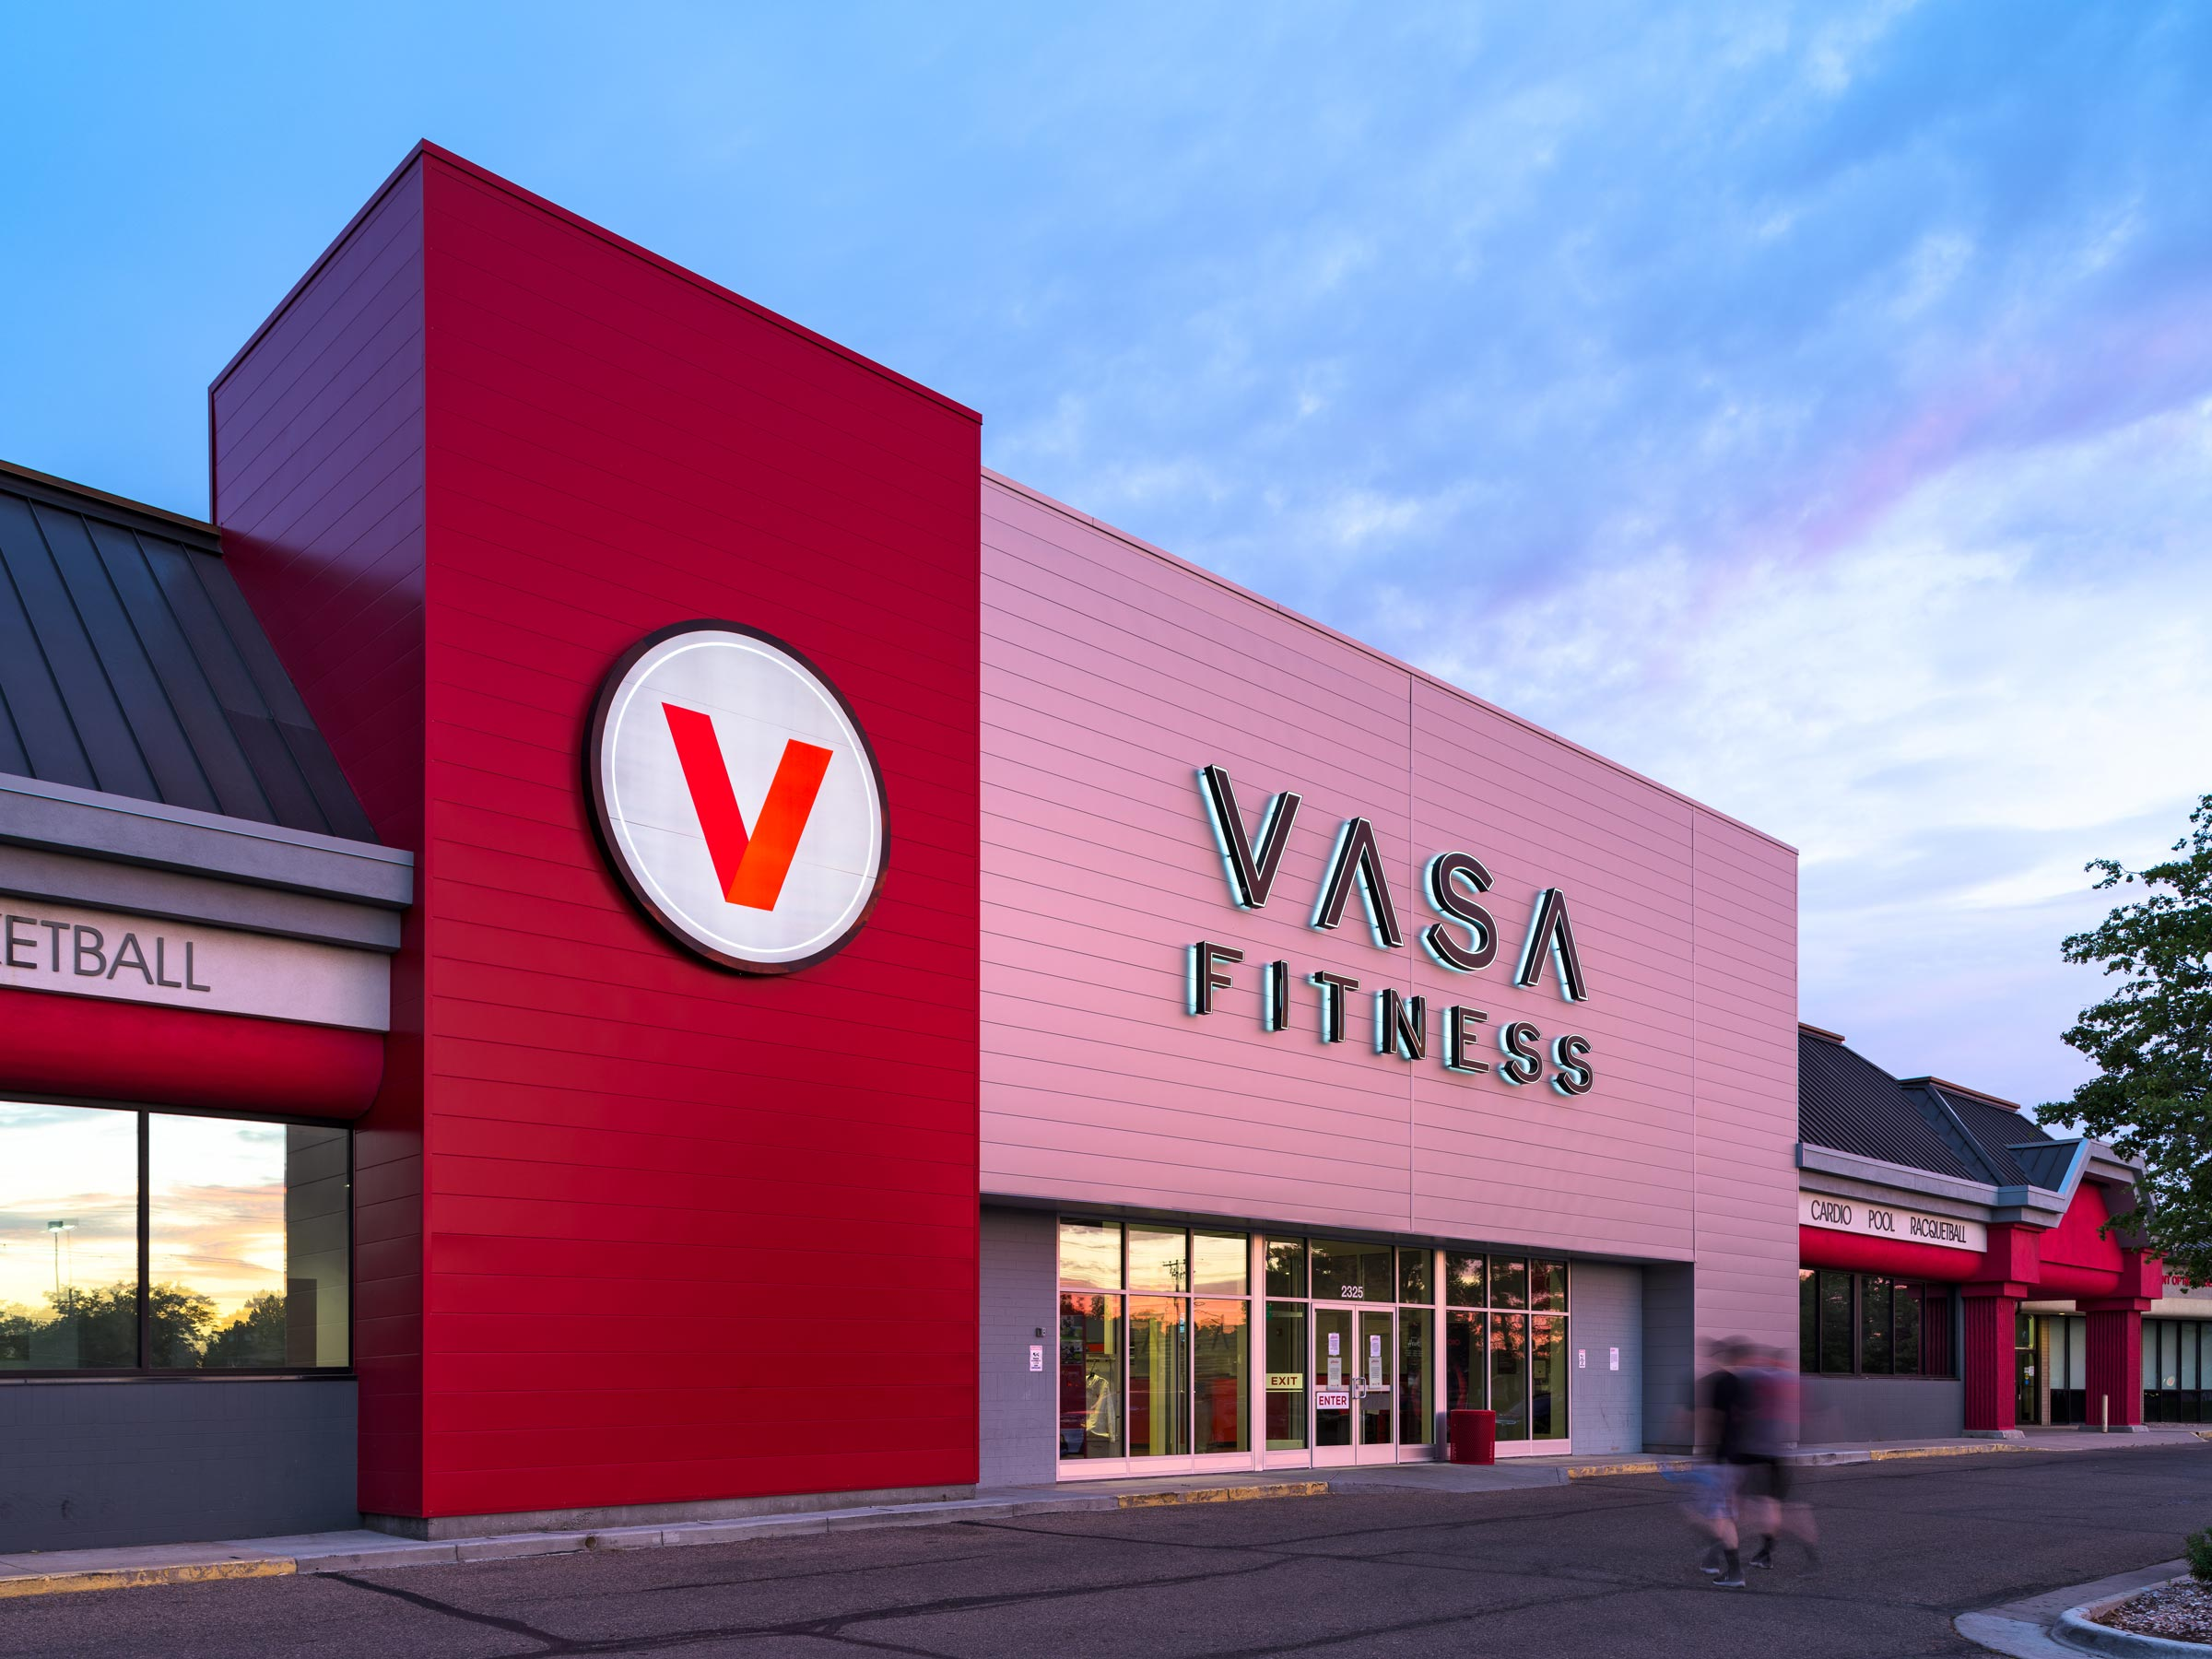 Vasa Fitness - Retail Architecture Photography - Greeley, Colorado